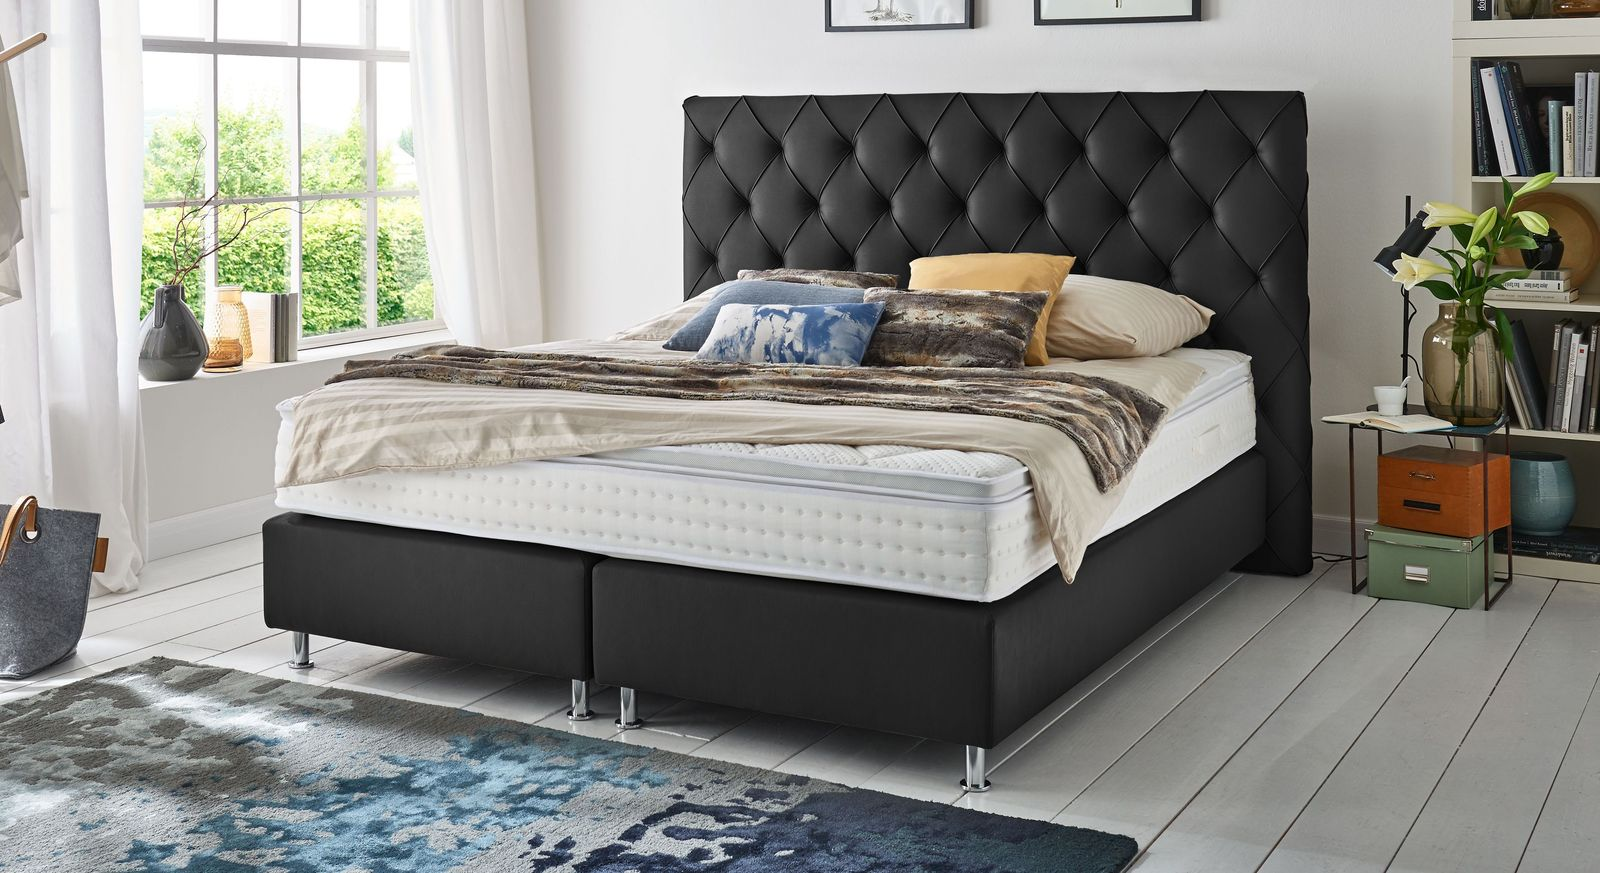 empire select boxspringbett moderner chesterfield look overland. Black Bedroom Furniture Sets. Home Design Ideas